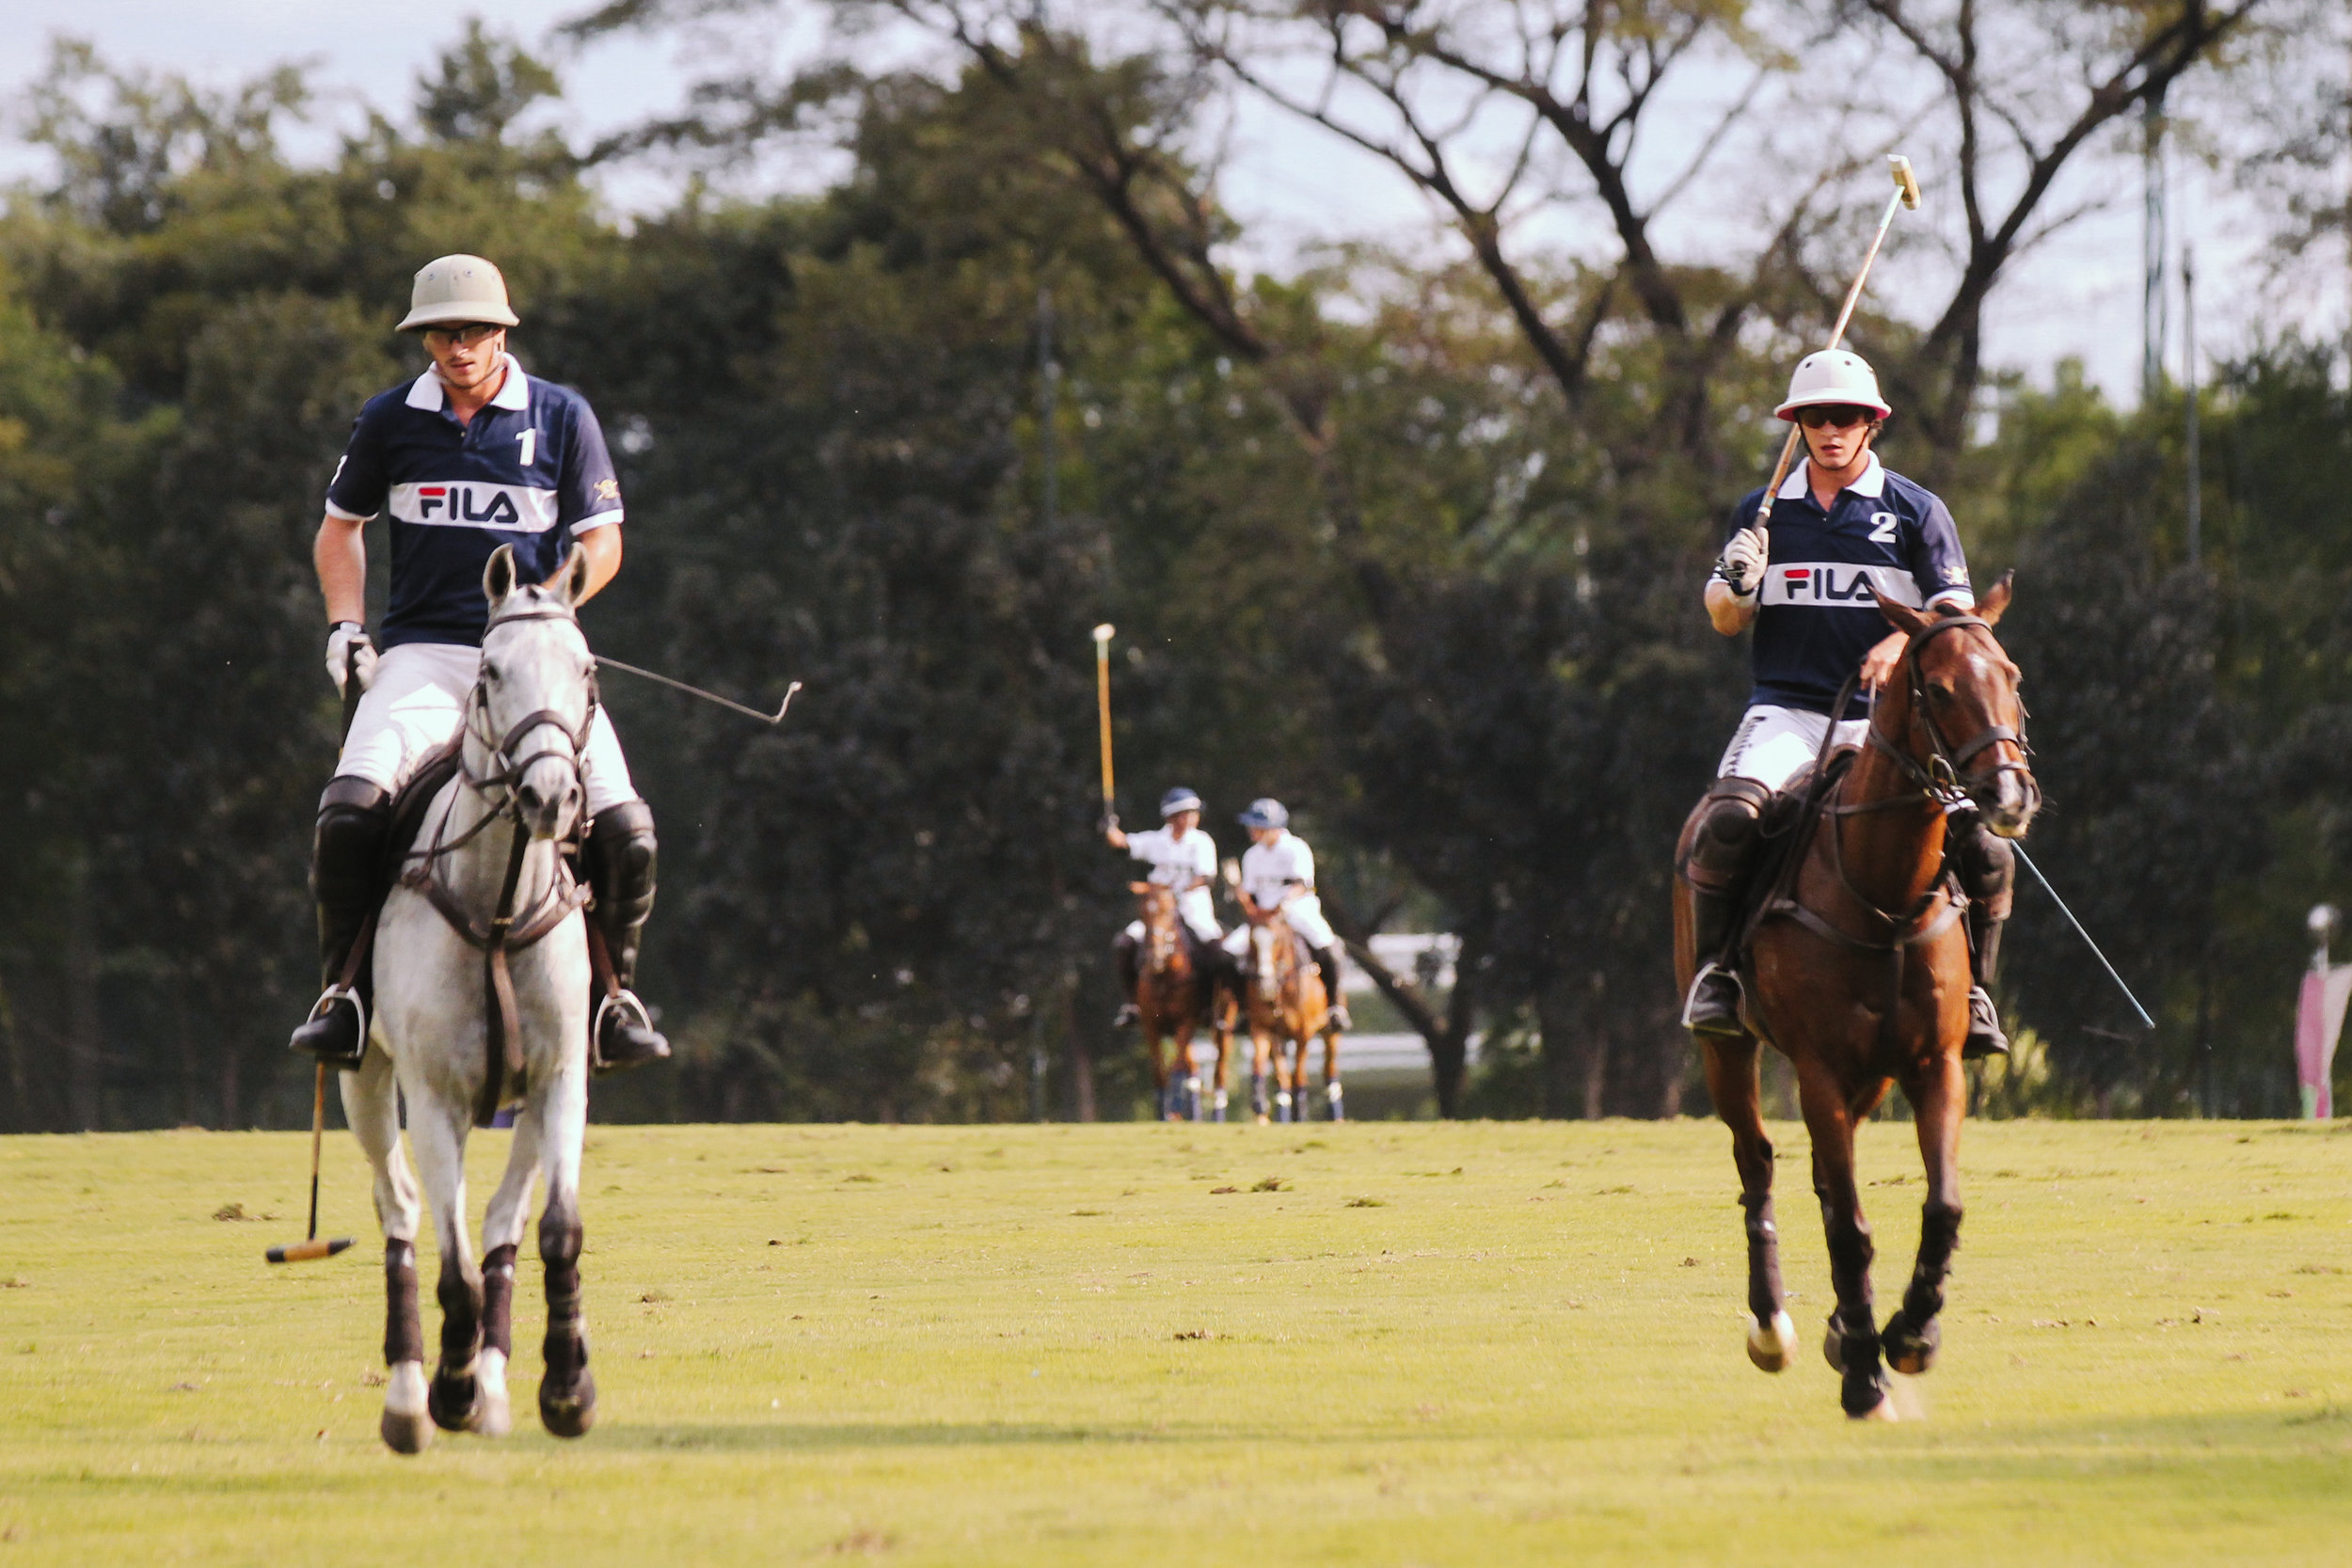 FILA Polo Cup 2017_High Goal-7.jpg